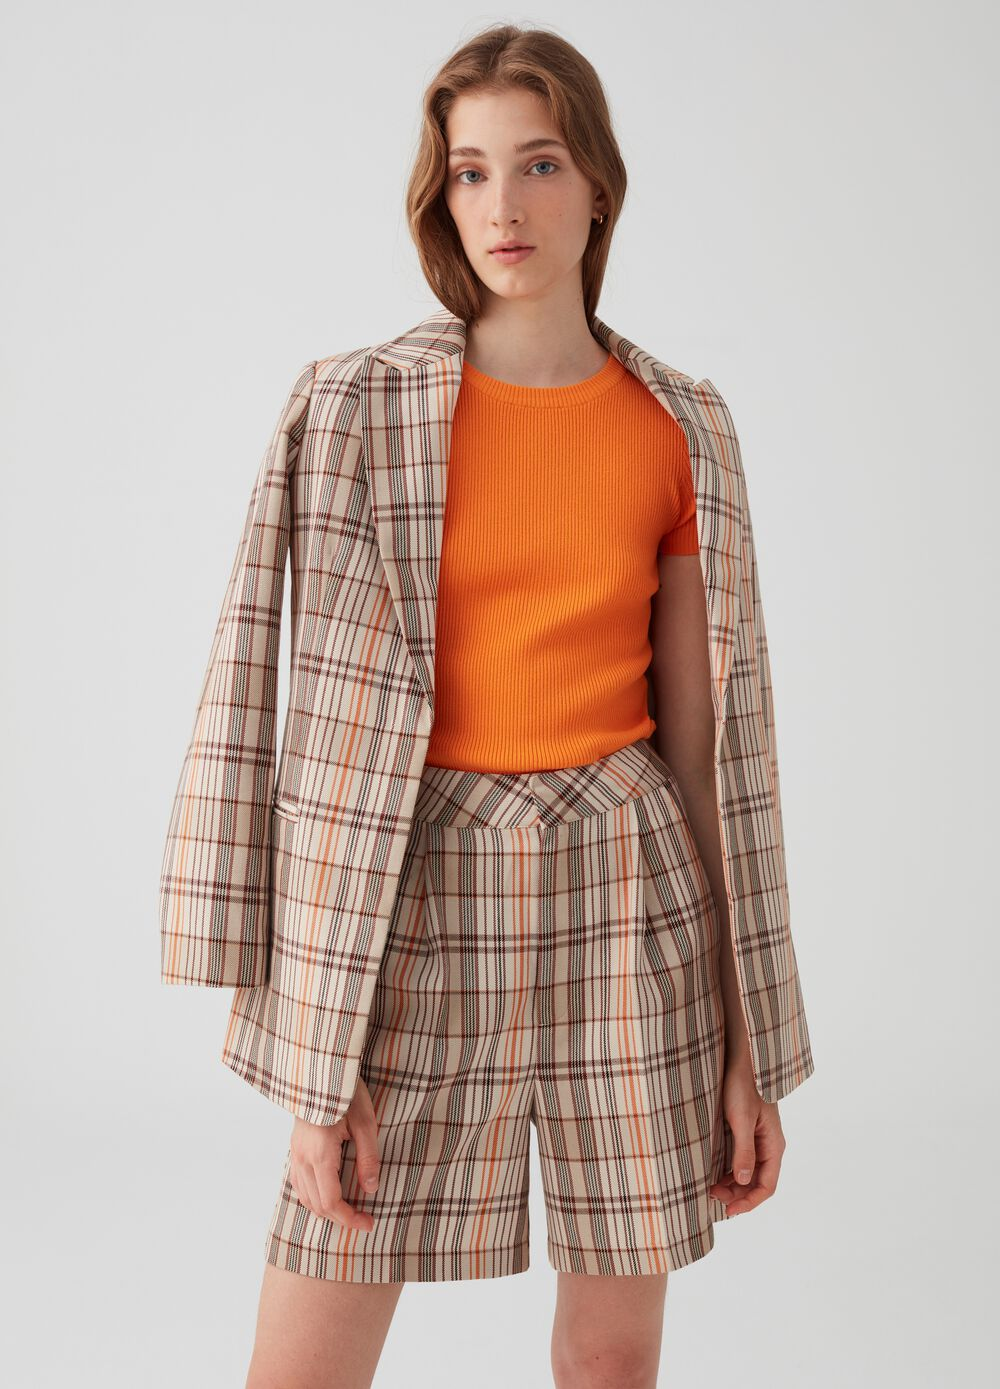 High-waisted Bermuda shorts with check pattern